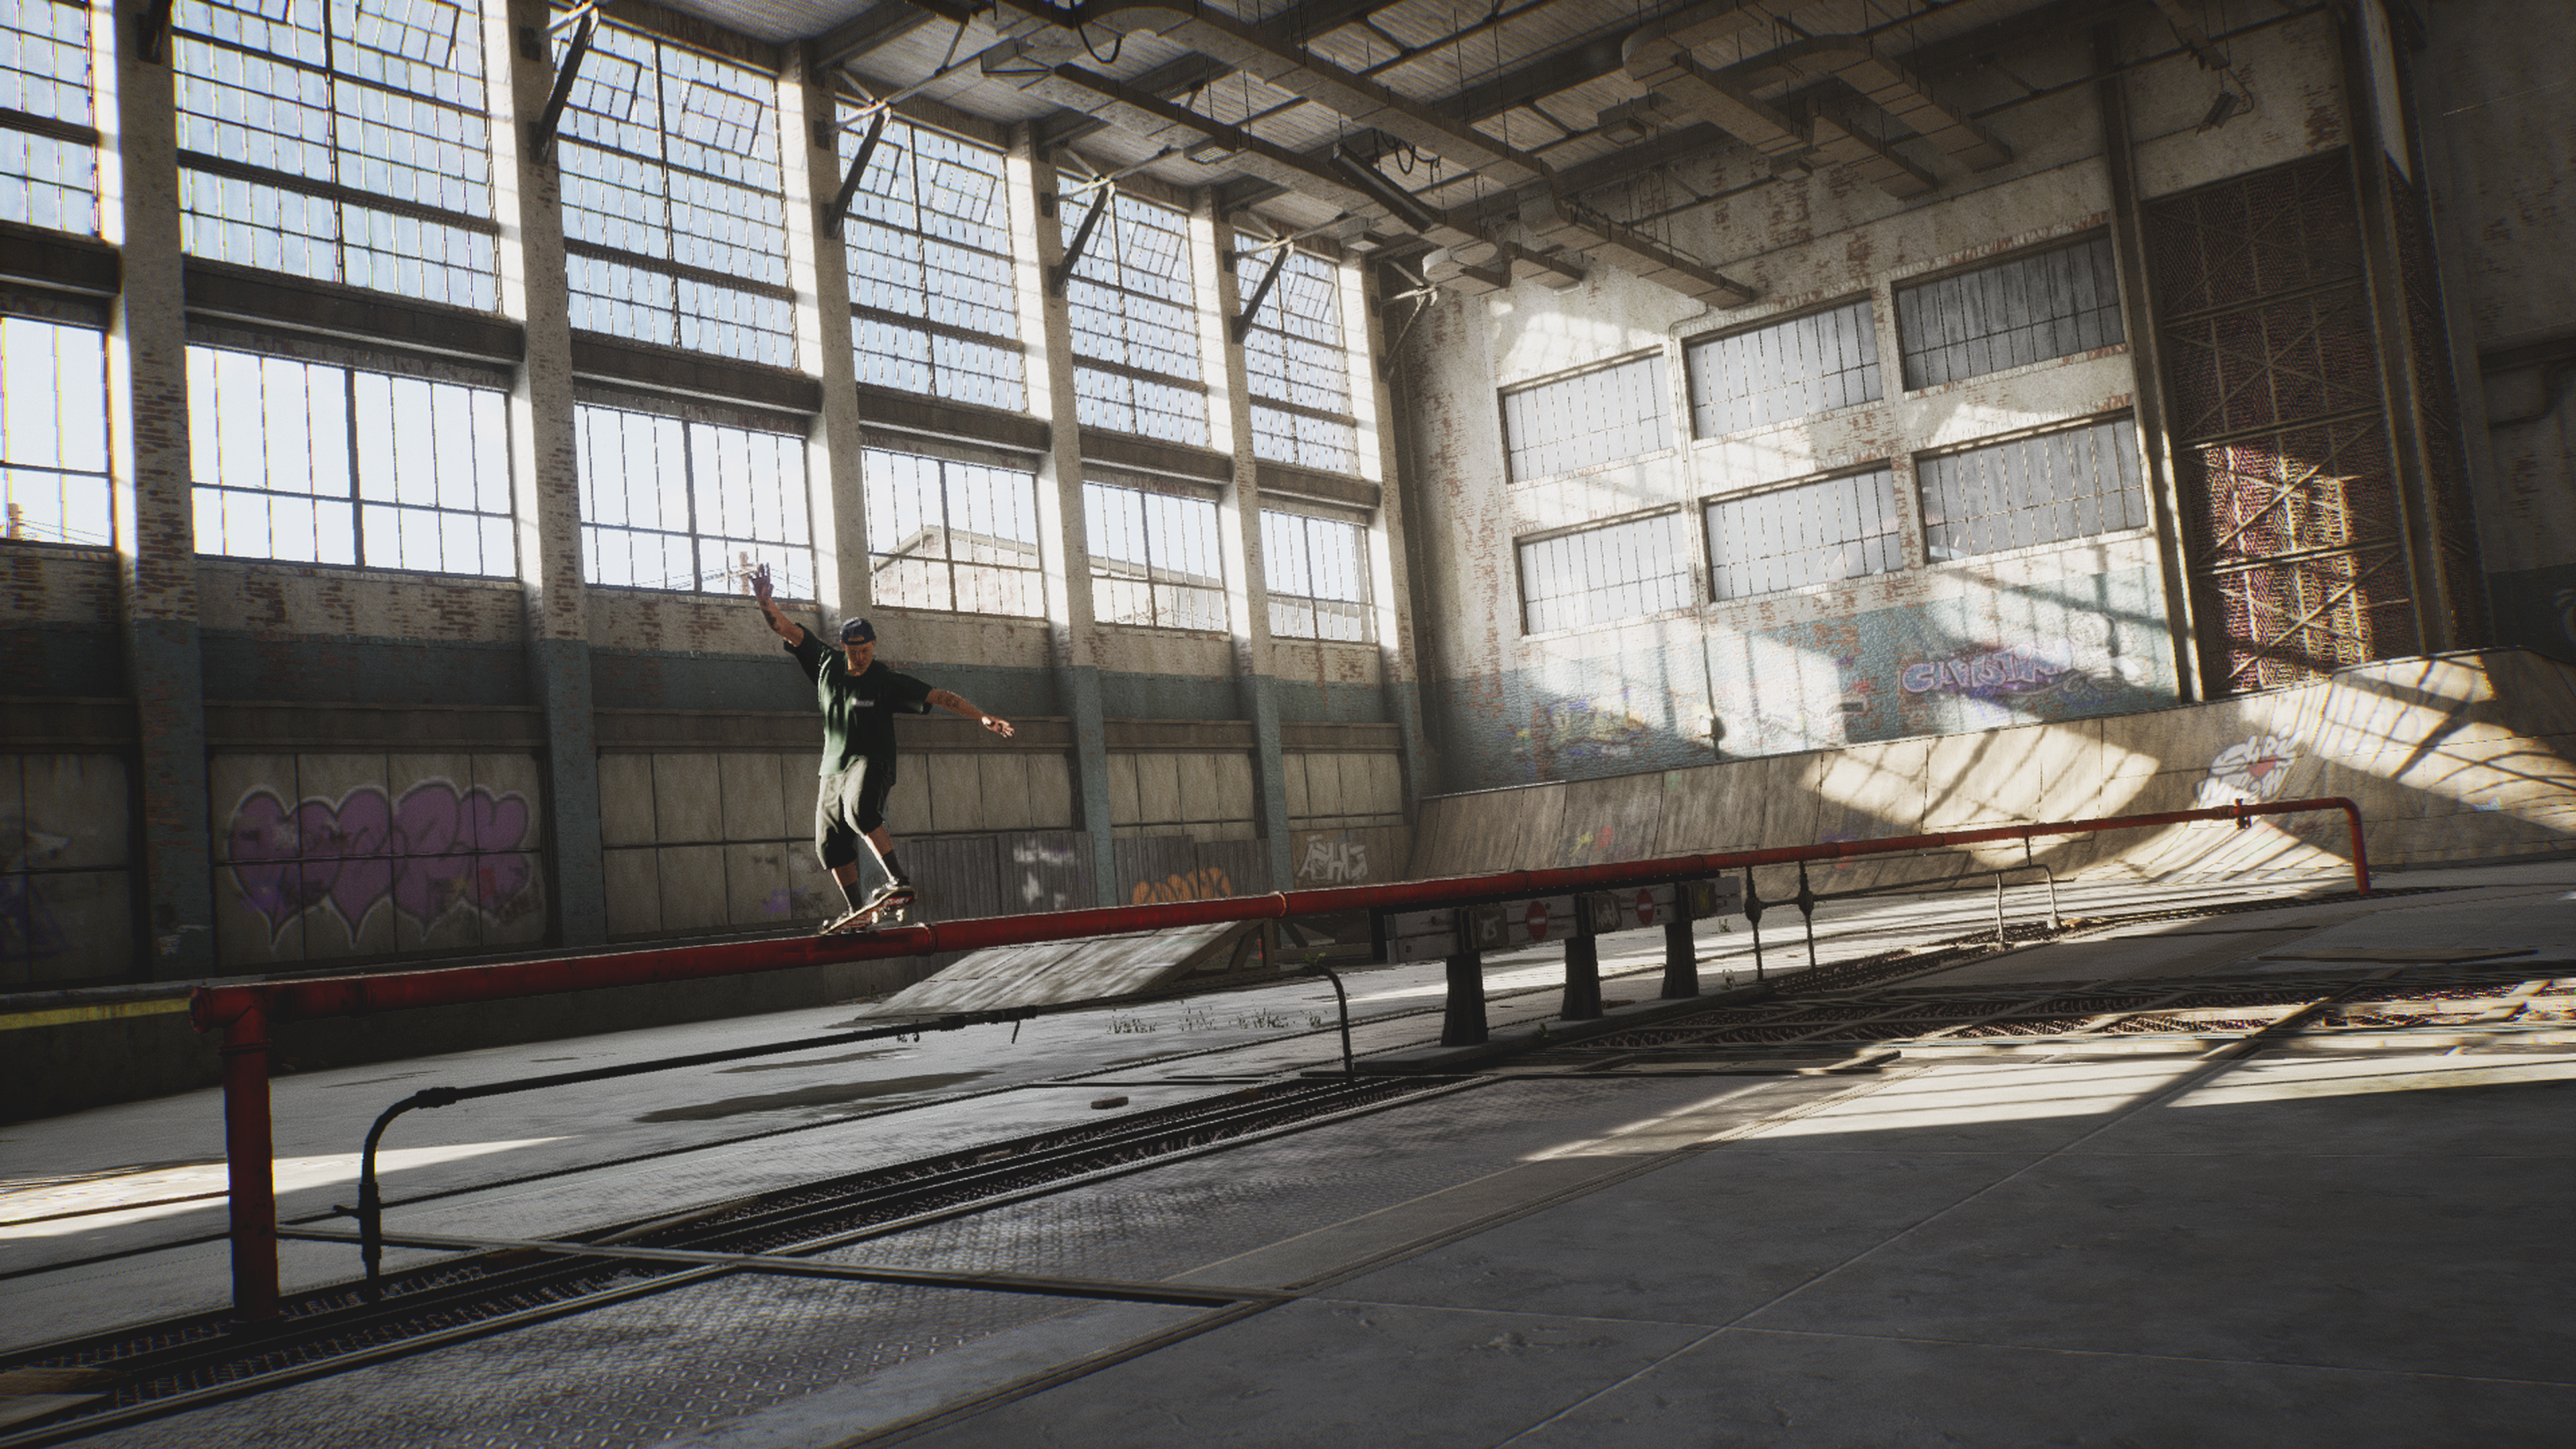 Tony Hawk's Pro Skater 1 + 2 - Gallery Screenshot 7